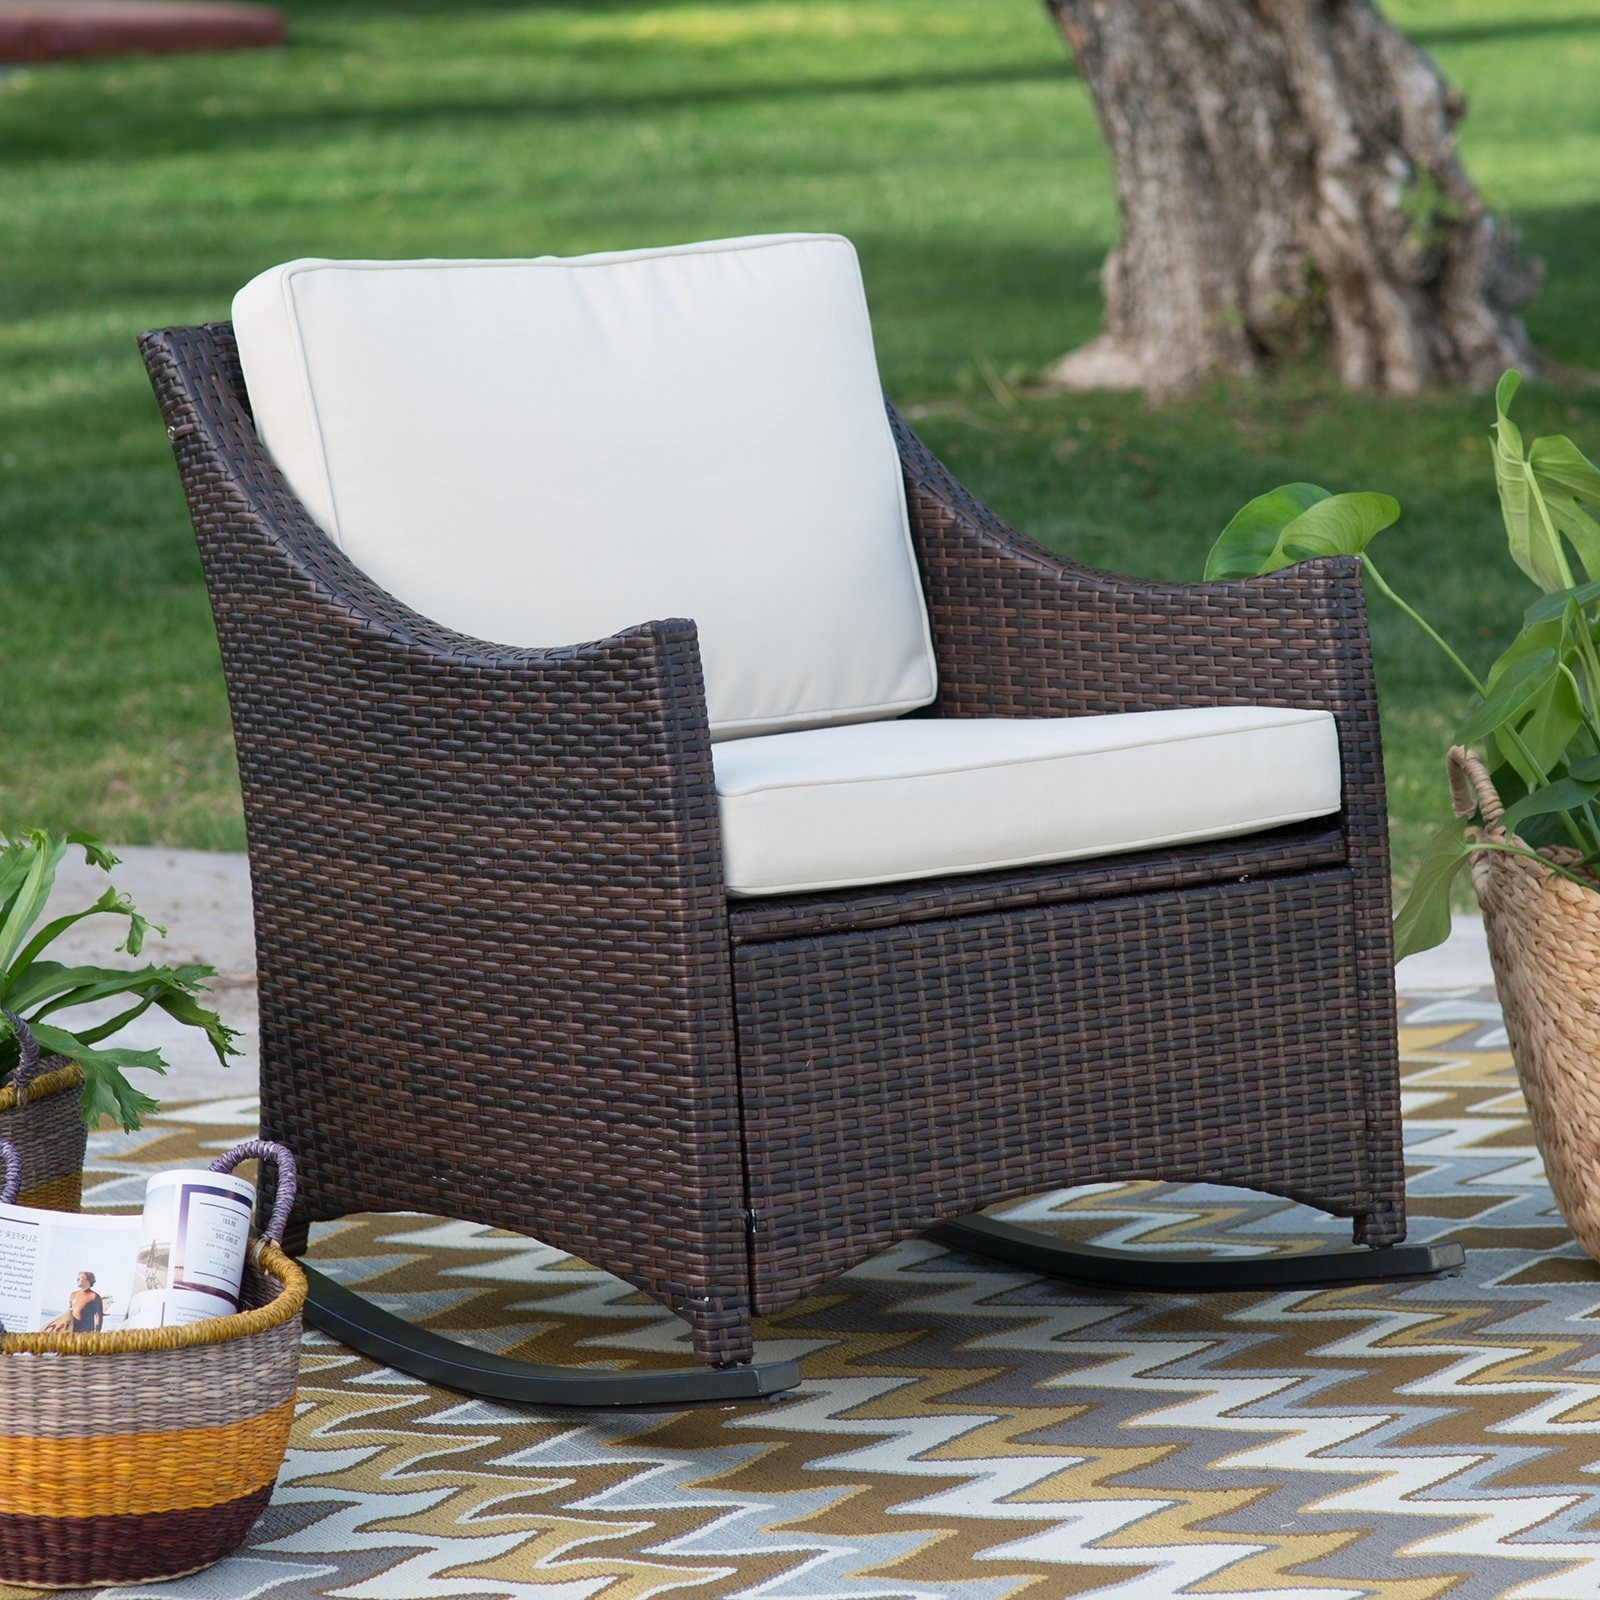 Rattan Outdoor Rocking Chairs Inside 2018 Chair (View 2 of 15)